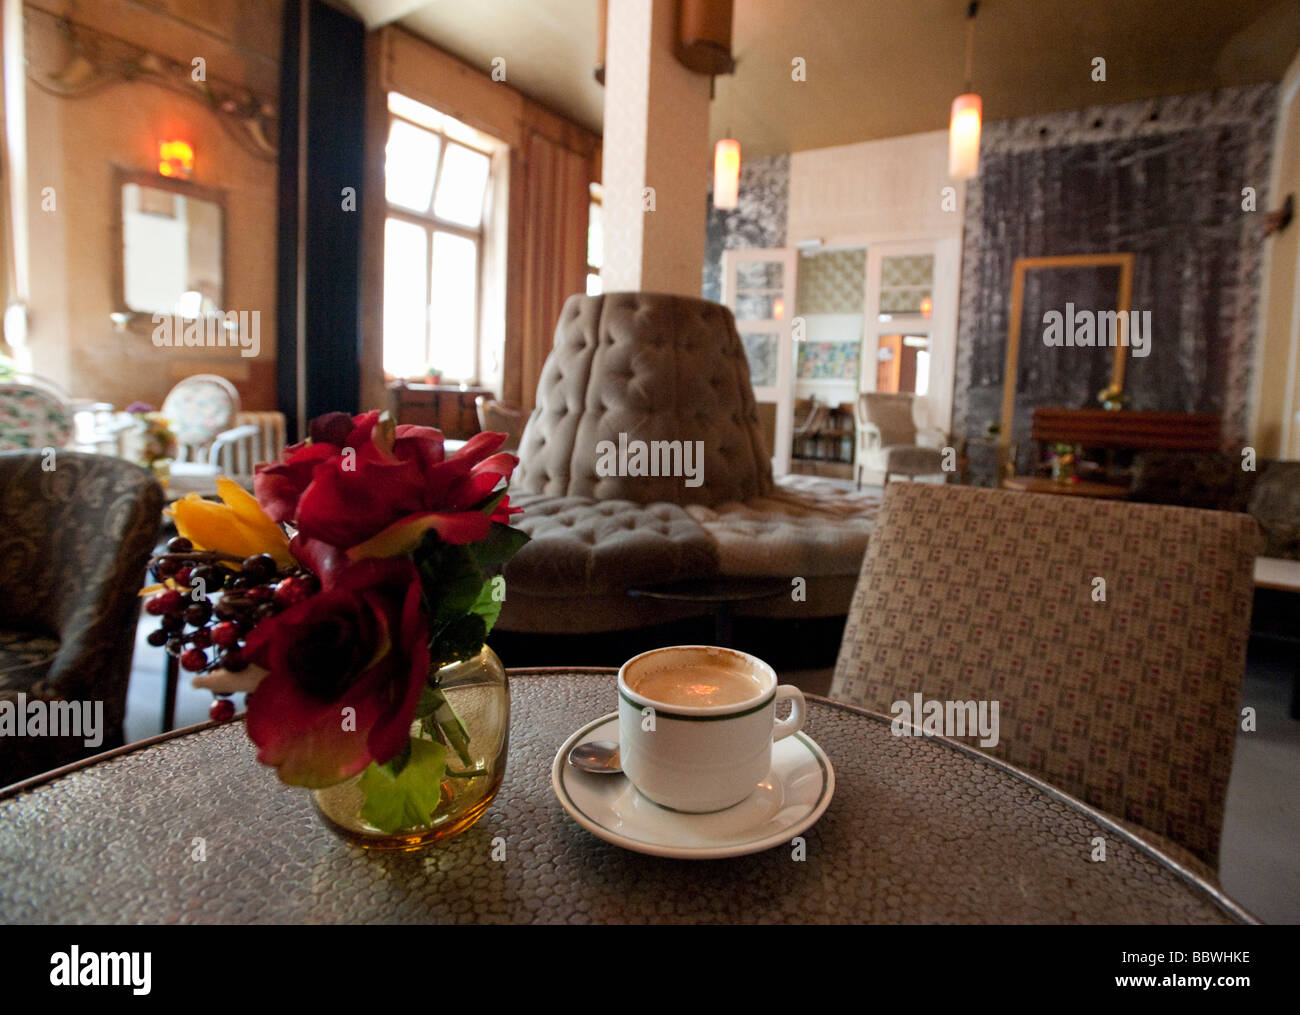 detail of interior decor and furnishings of trendy bohemian cafe called wohnzimmer in prenzlauer berg berlin germany